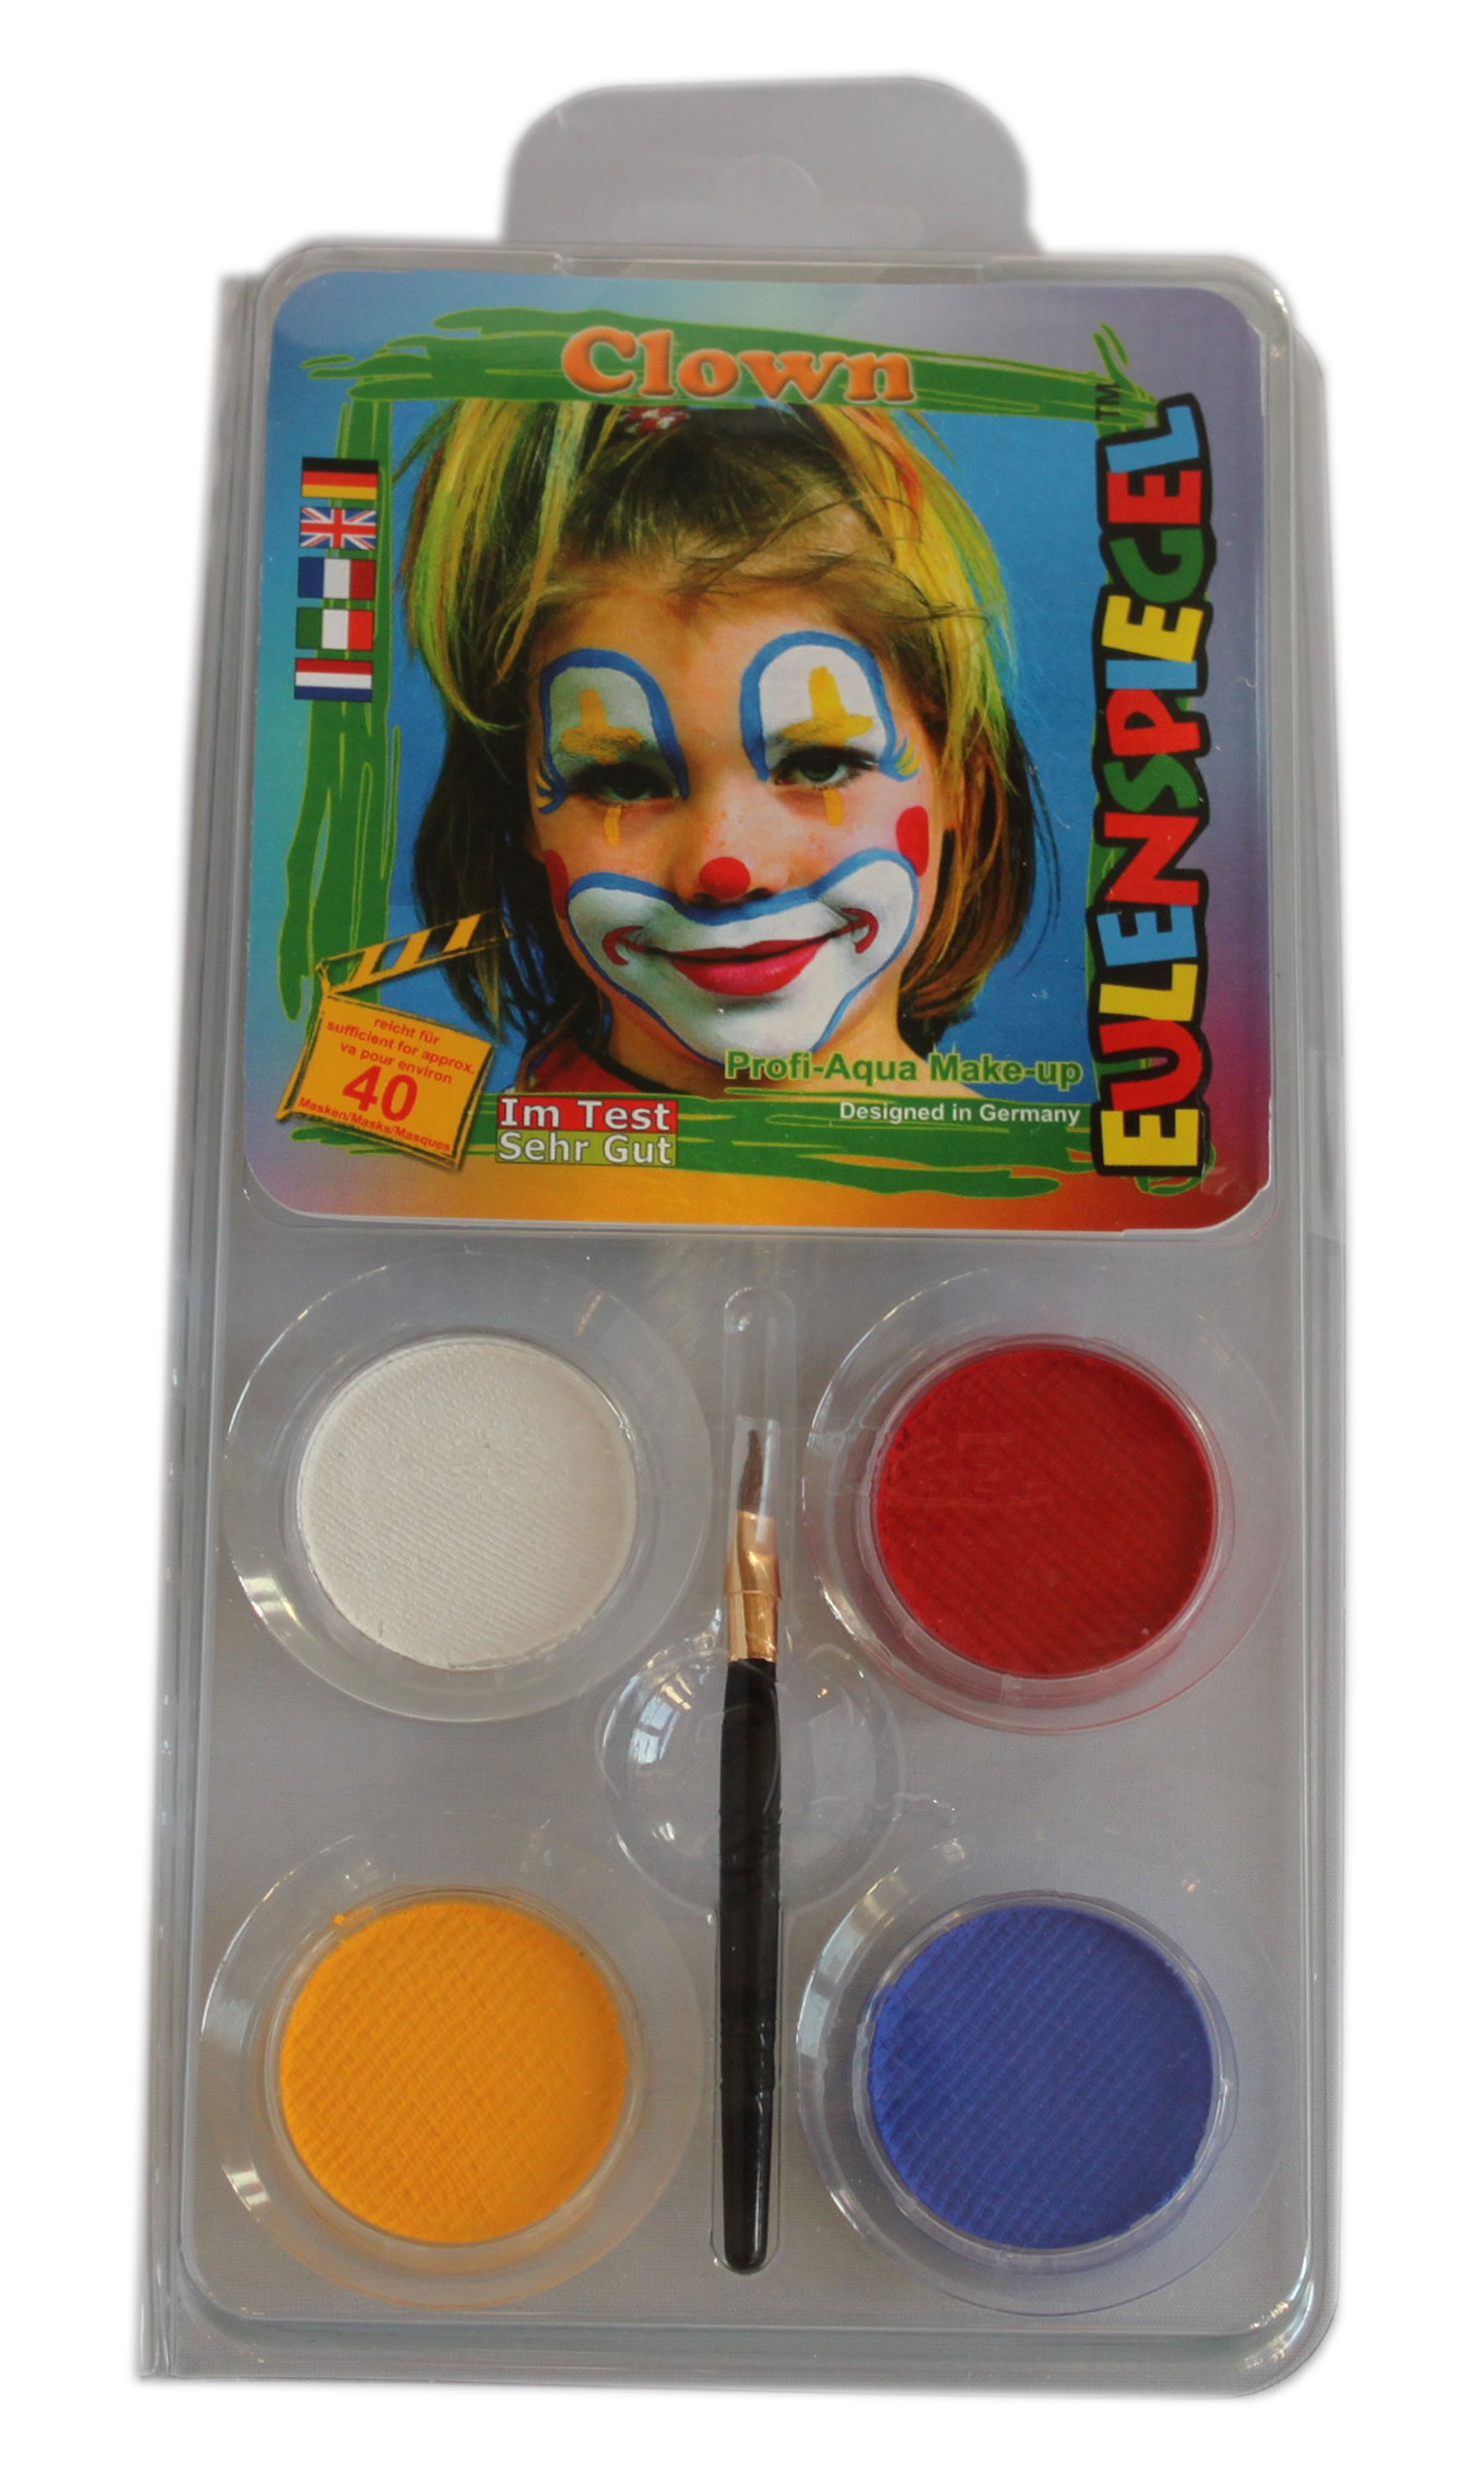 CLOWN Aqua Schminke Motiv Set, Make up,Eulenspiegel Karneval